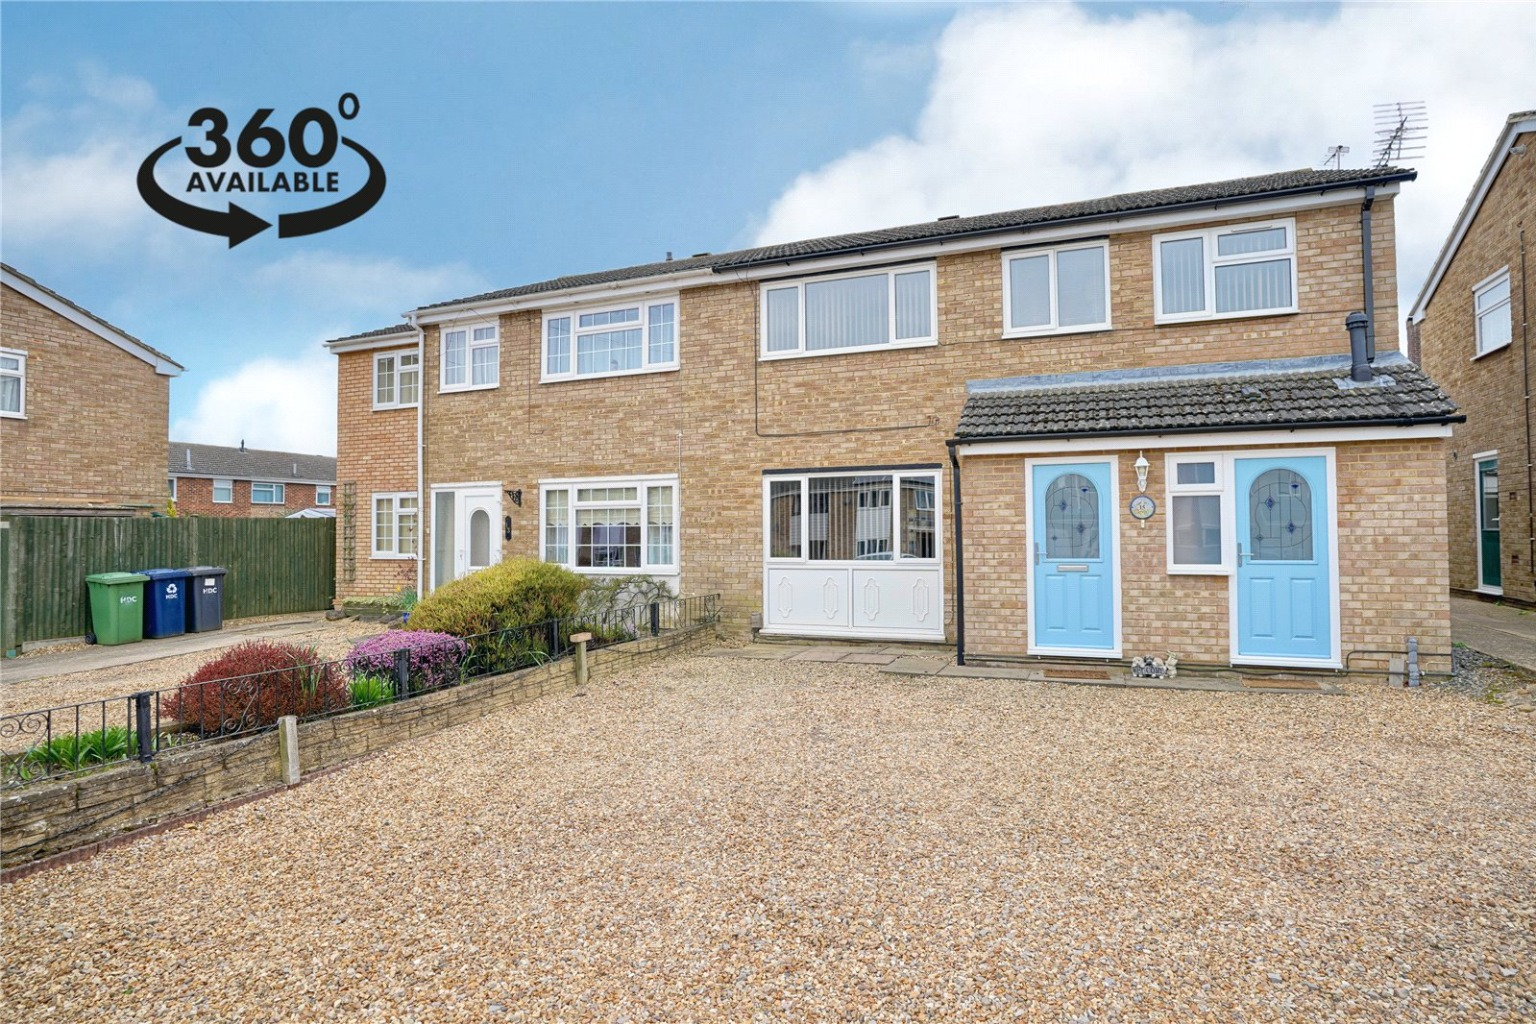 4 bed semi-detached house for sale in Kenilworth Close, St. Neots 0